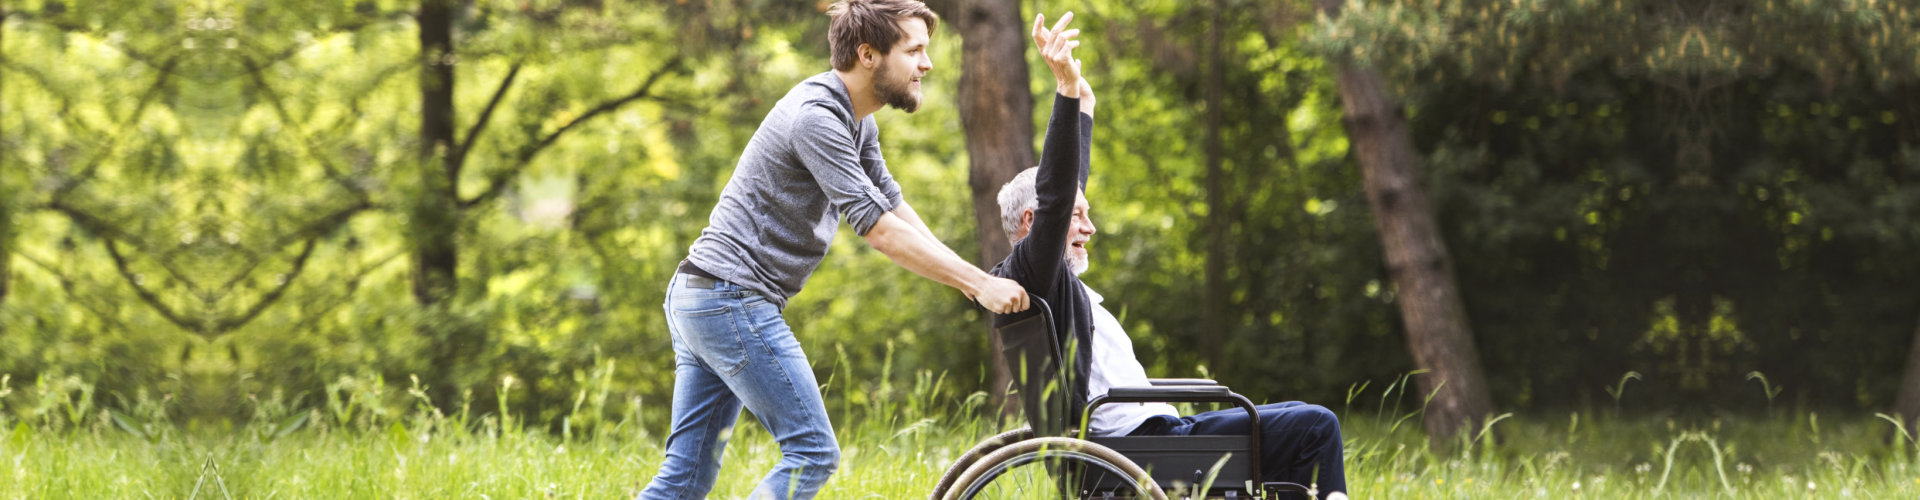 Elderly man raising both arms being so happy while being pushed in wheelchair by a caregiver